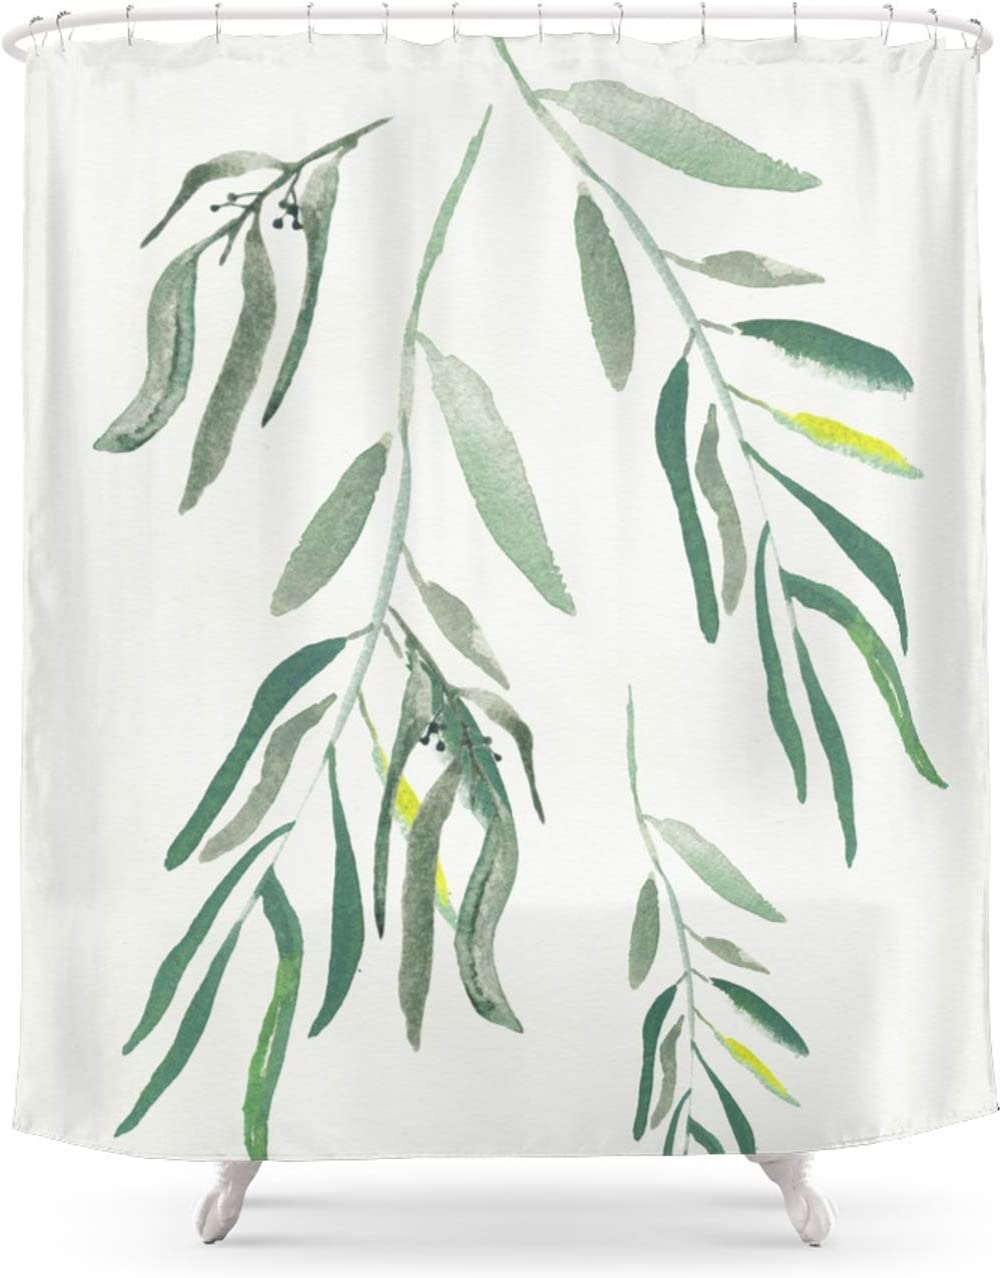 Society6 Eucalyptus Branches Ii by on Lavieclaire Long Beach Mall Curtain Shower Ranking TOP13